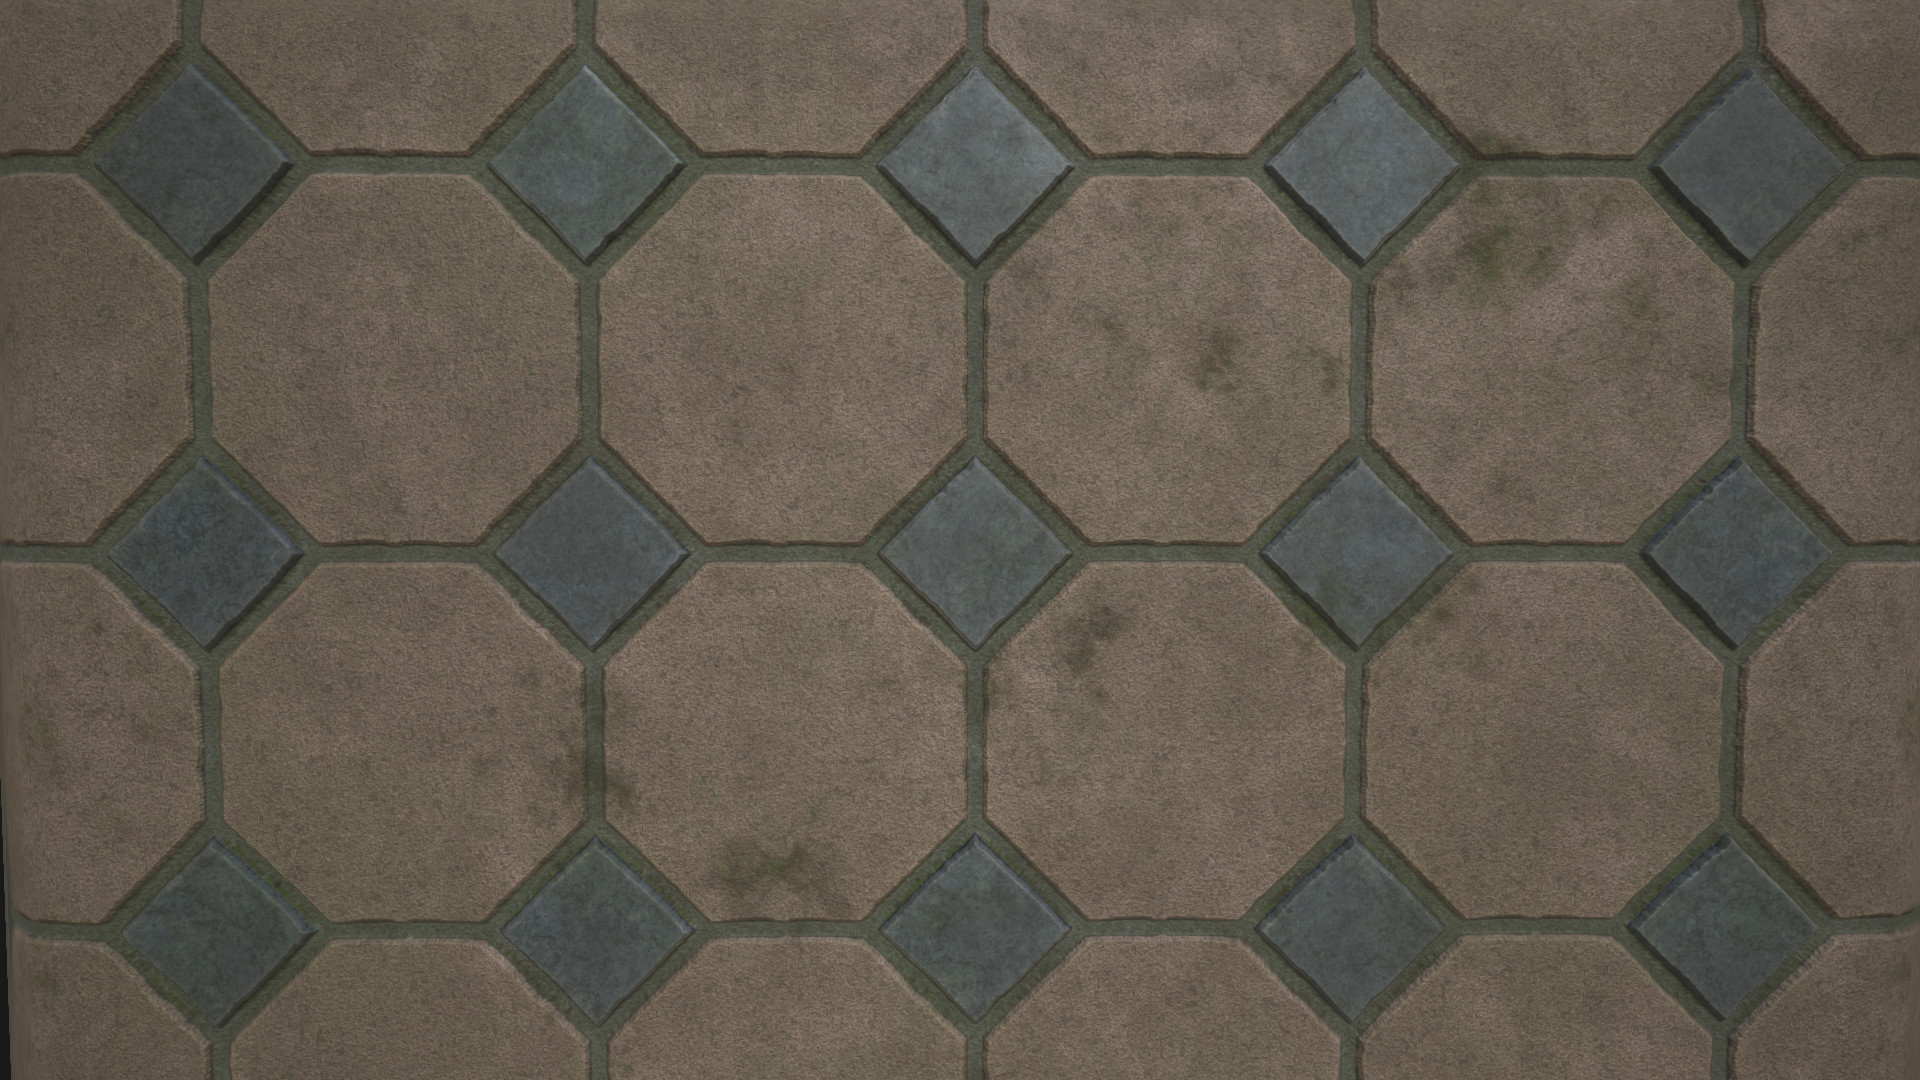 Andr 233 Galr 227 O Stone Tile Texture Clean Dirty